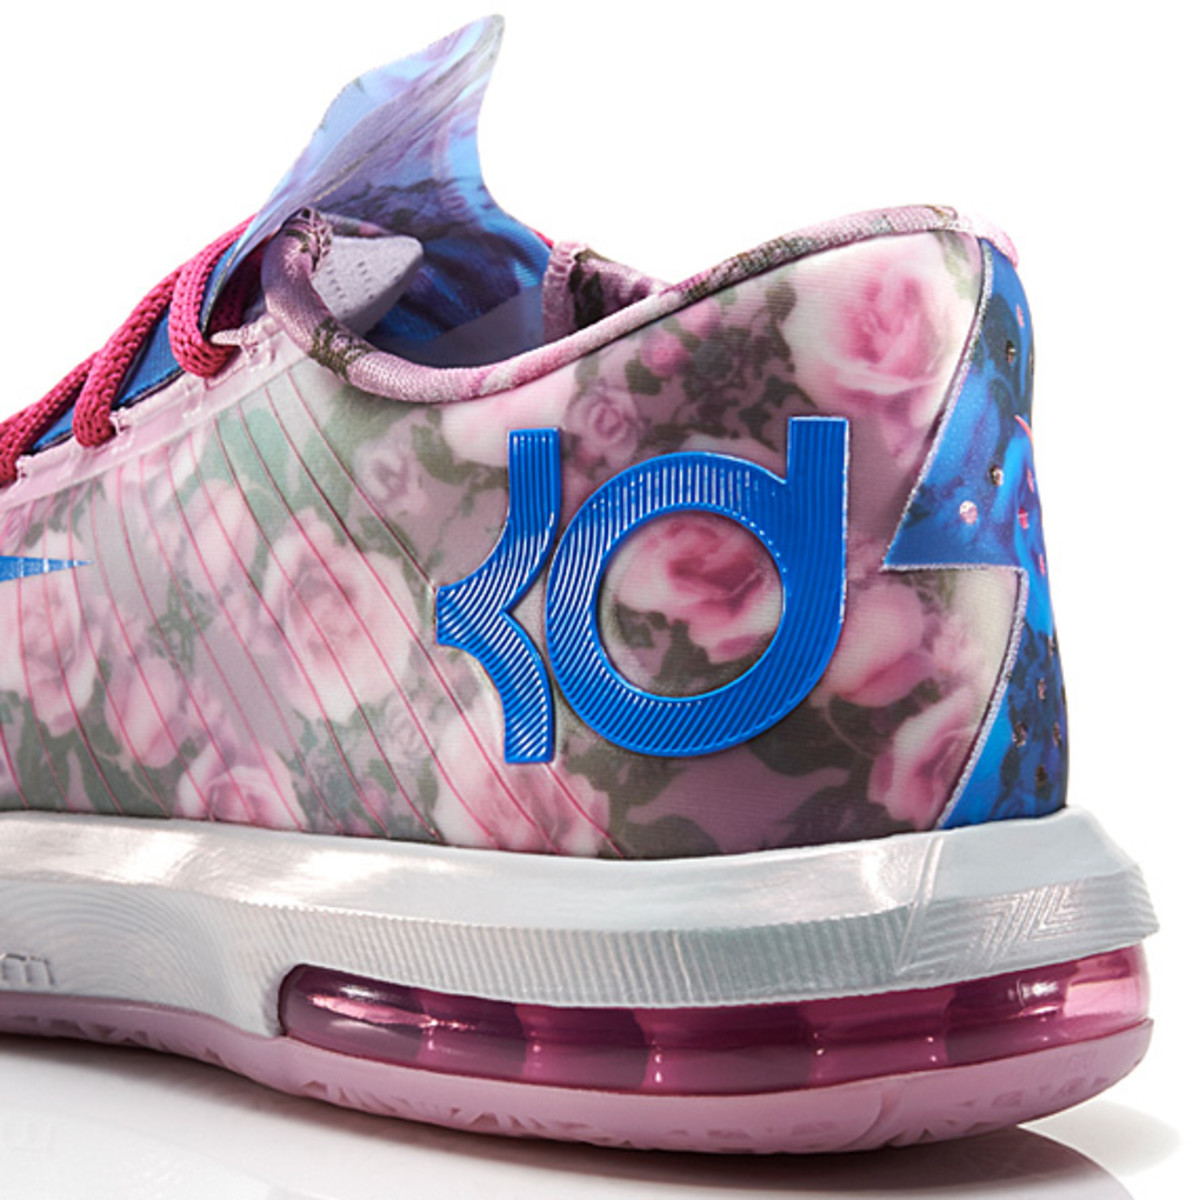 nike-kd-6-aunt-pearl-collection-officially-unveiled11